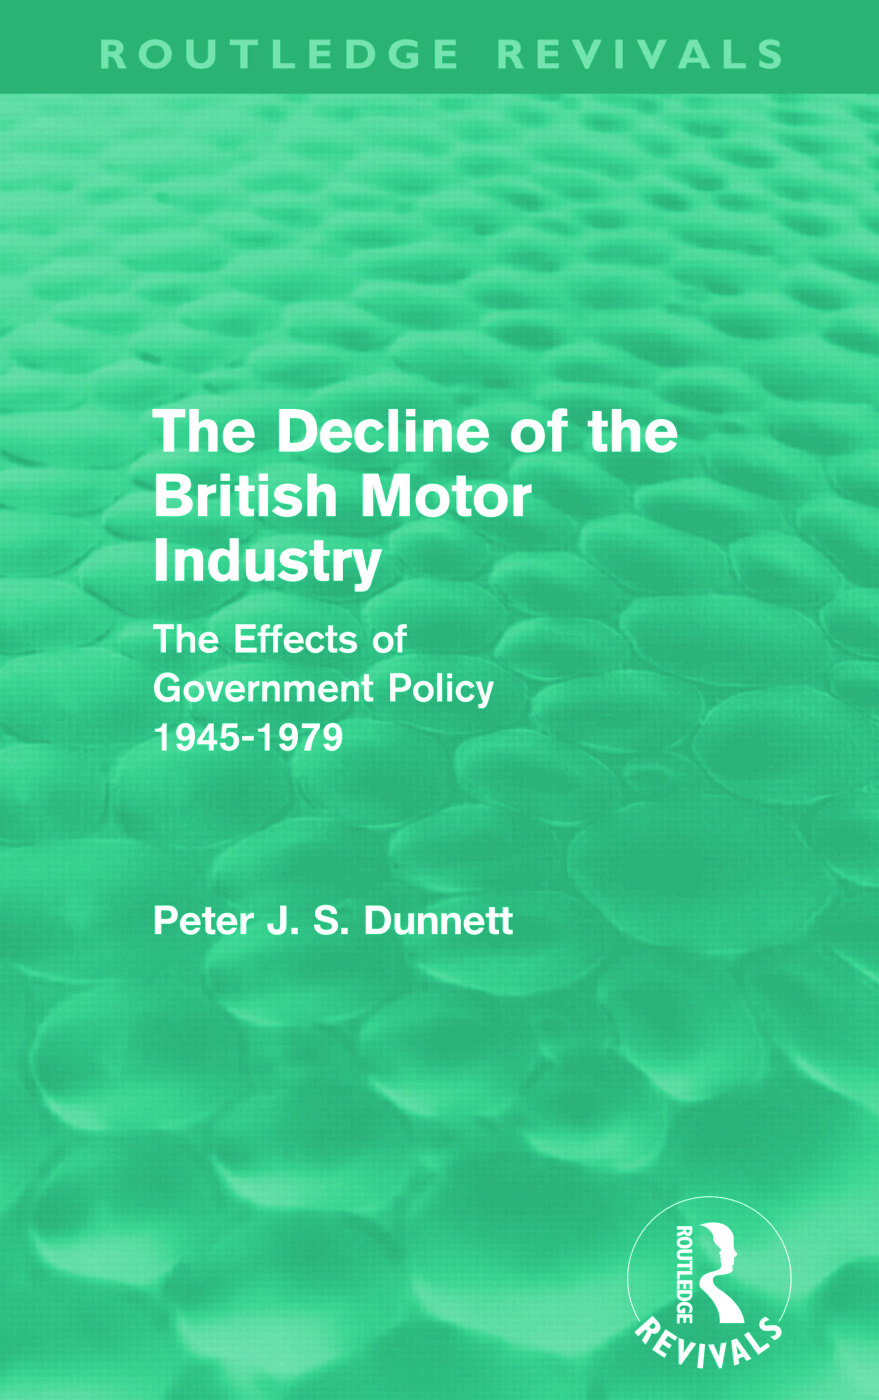 The Decline of the British Motor Industry (Routledge Revivals): The Effects of Government Policy, 1945-79, 1st Edition (Paperback) book cover